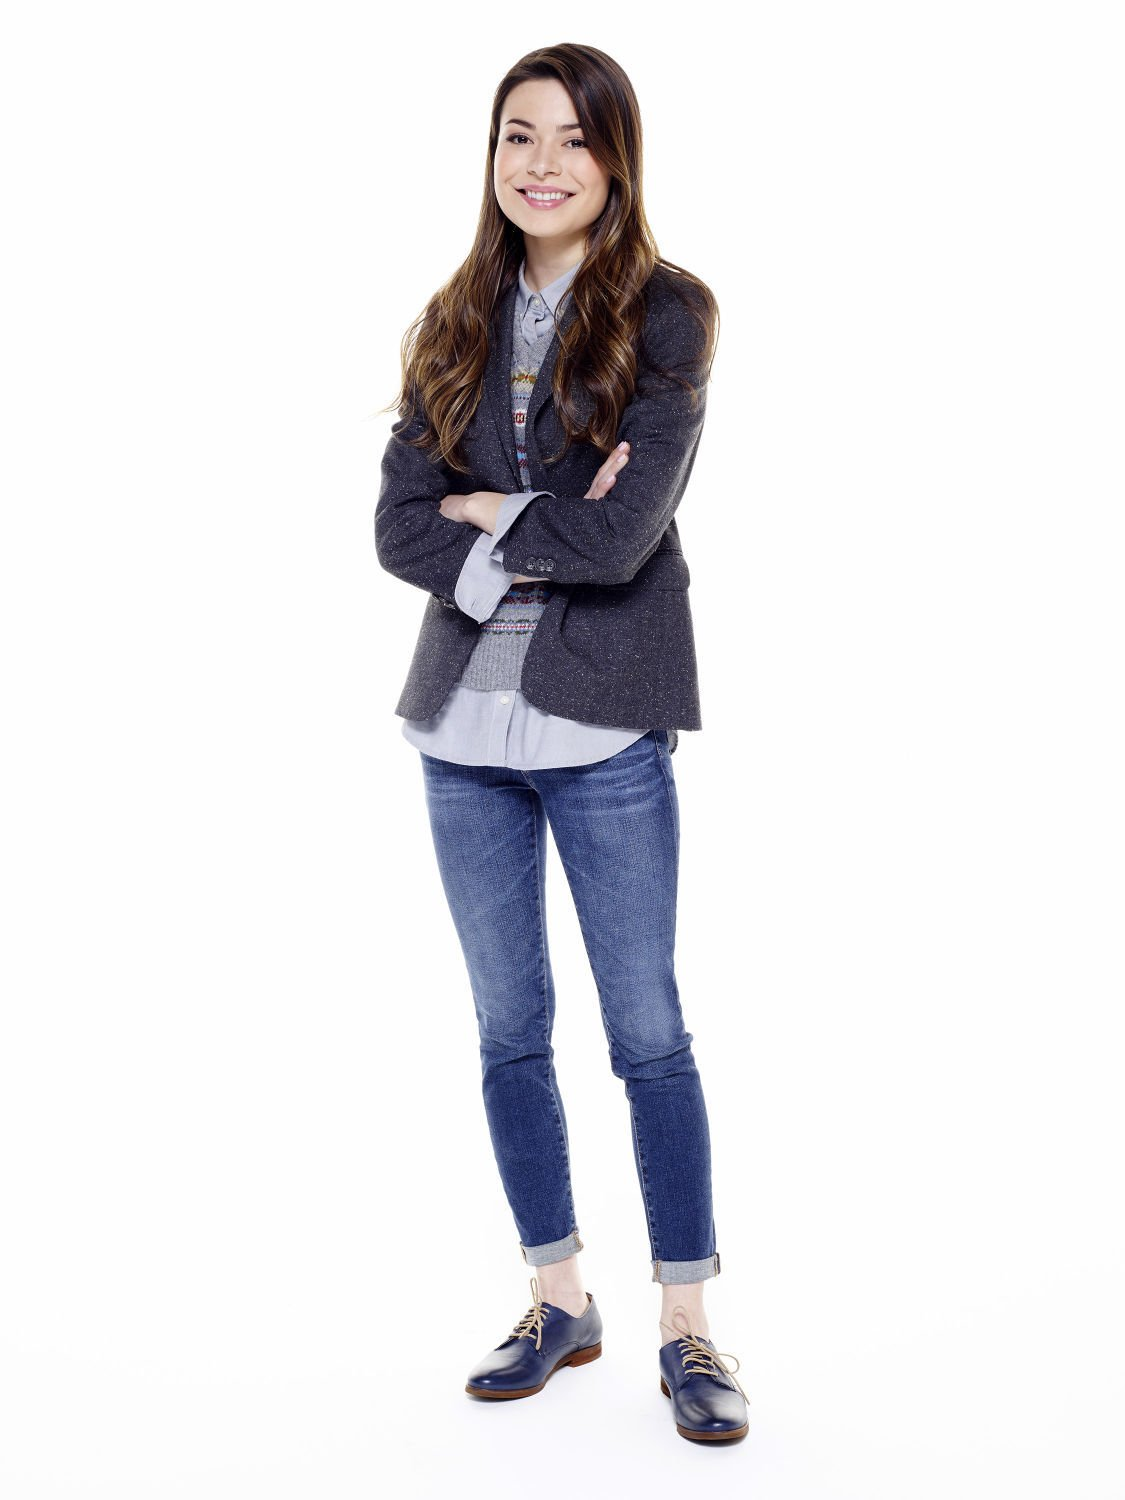 Miranda Cosgrove finds another life after \'iCarly\' | Television ...